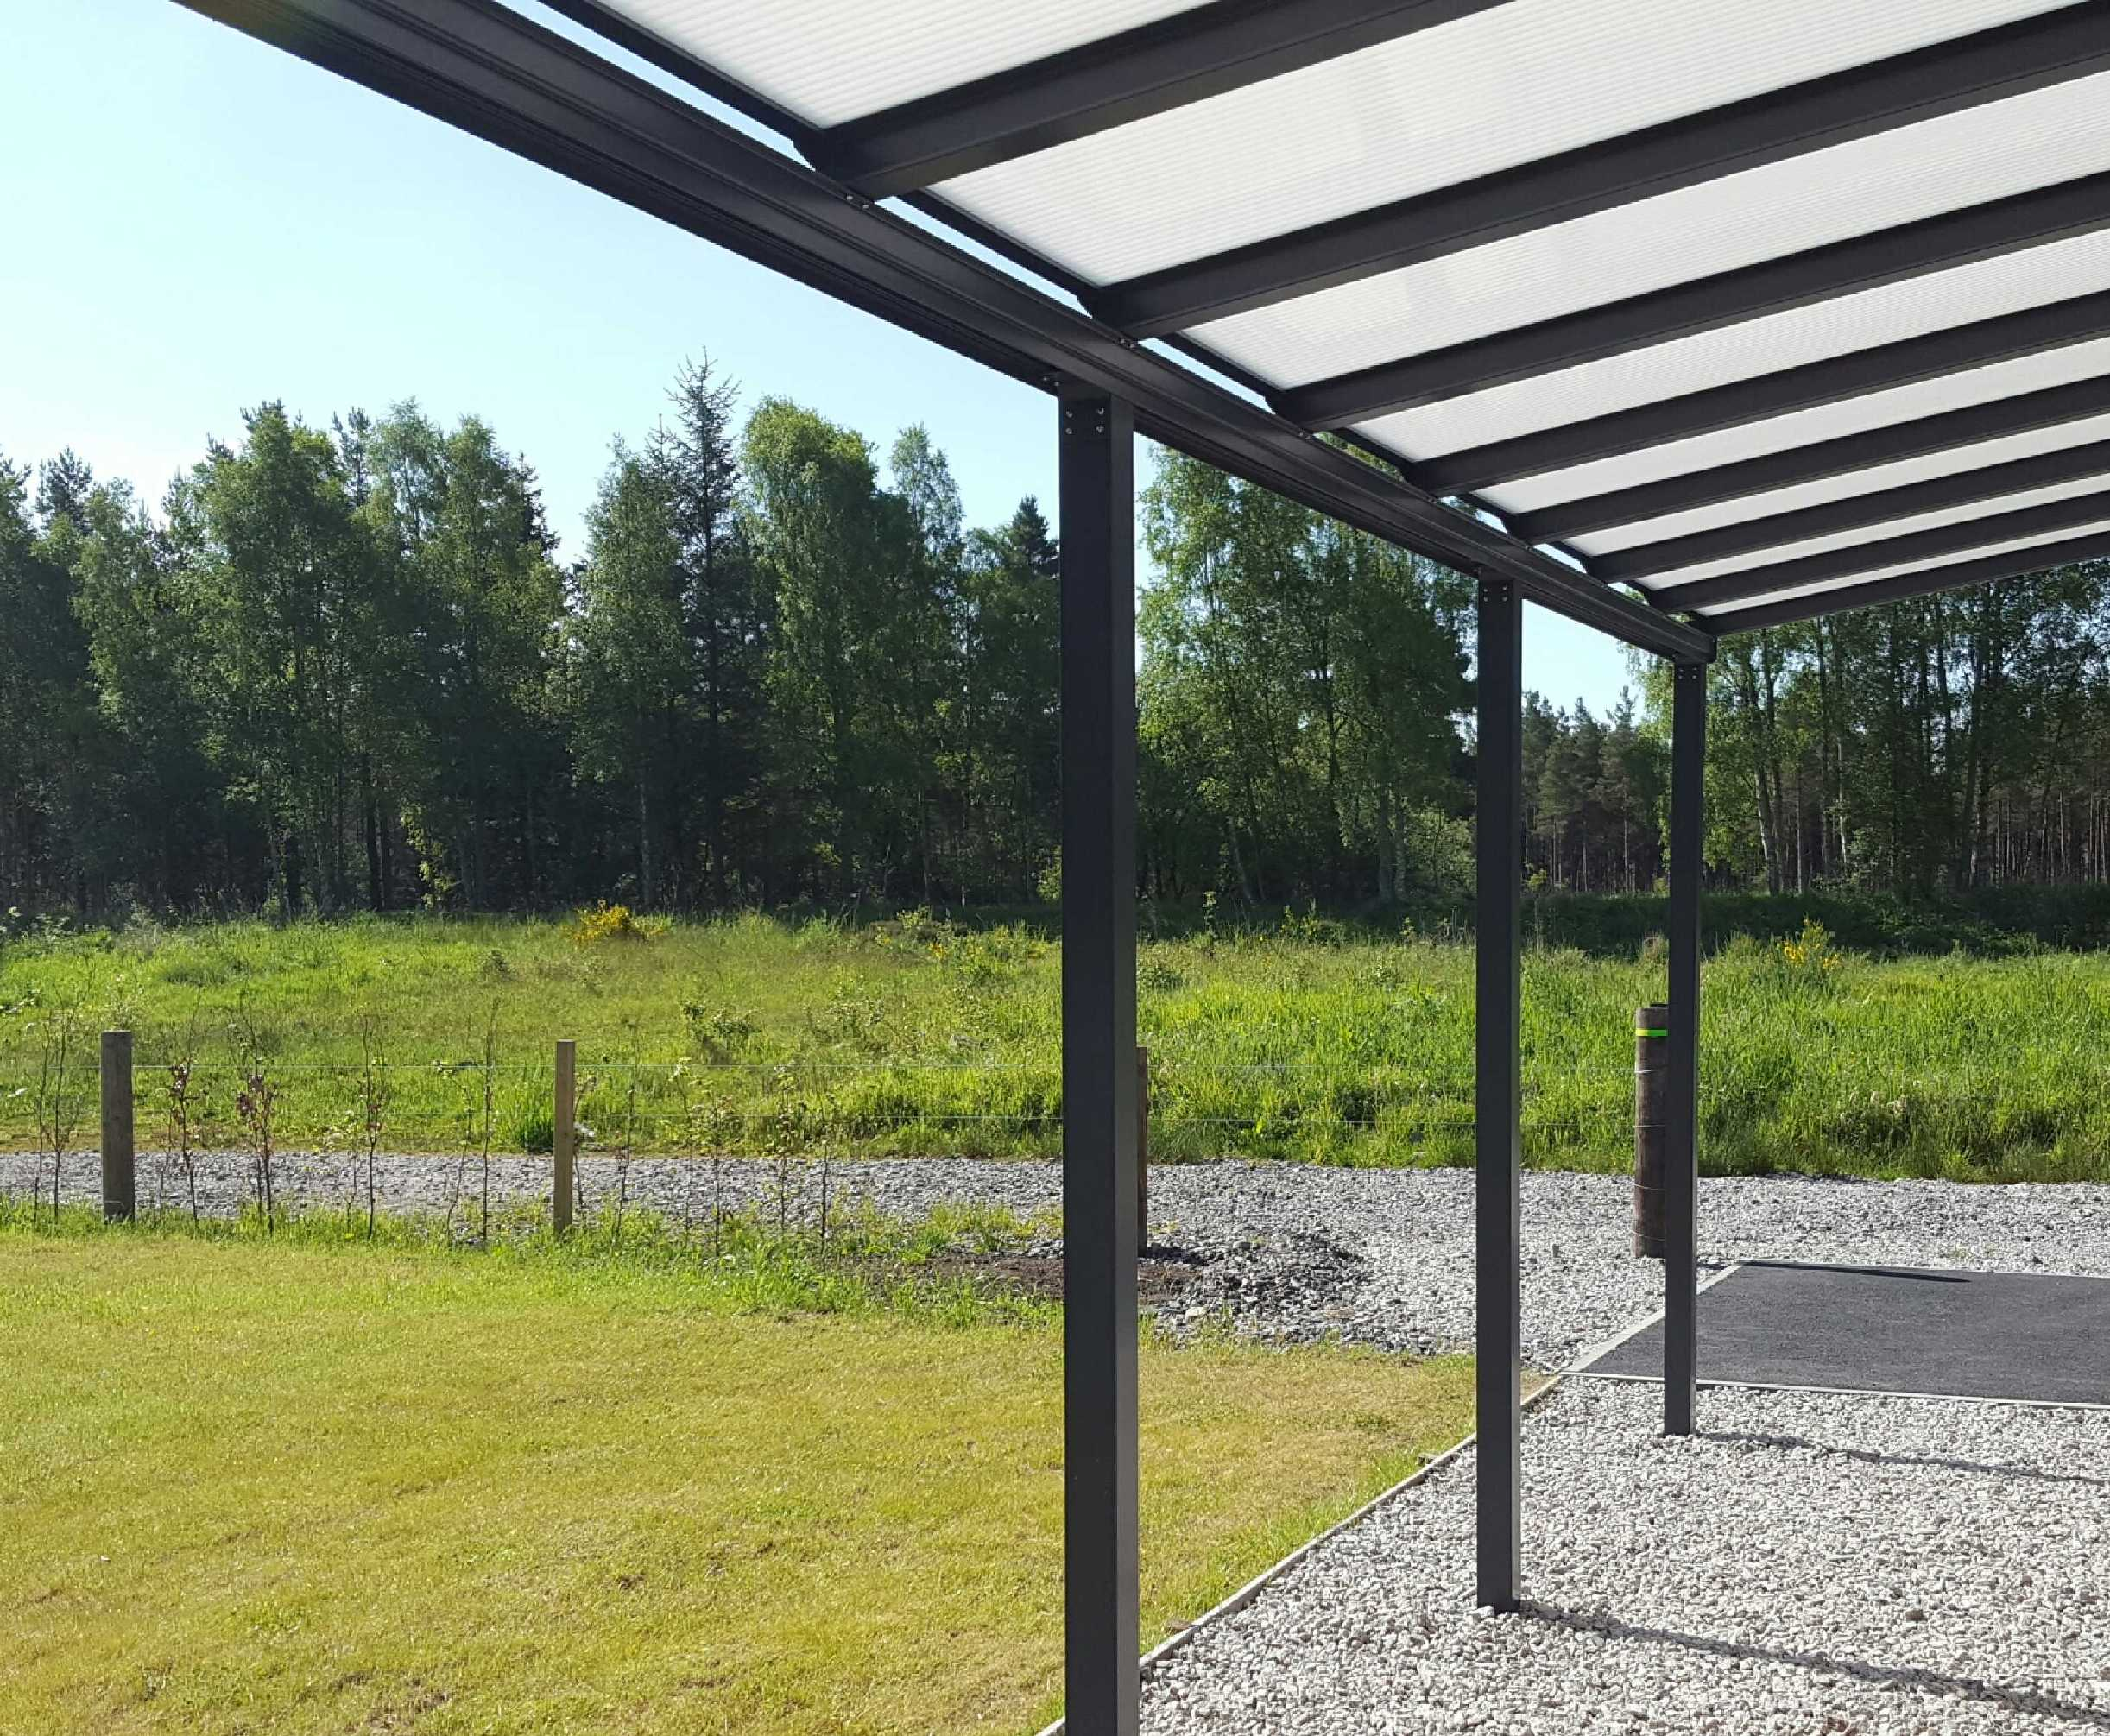 Omega Smart Lean-To Canopy, Anthracite Grey, UNGLAZED for 6mm Glazing - 2.8m (W) x 2.5m (P), (2) Supporting Posts